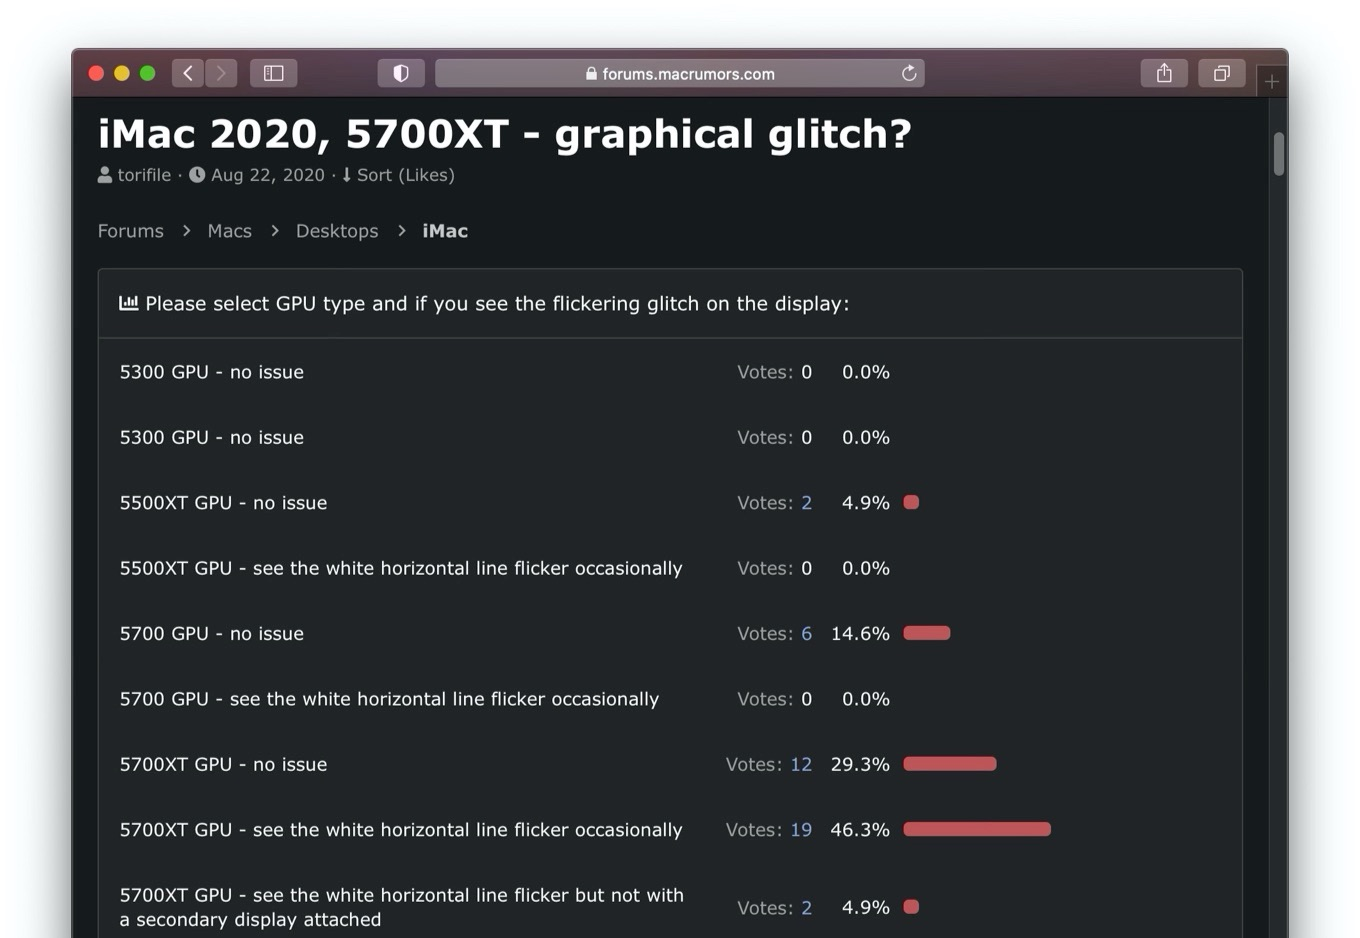 iMac 2020 5700XT graphical glitch votes